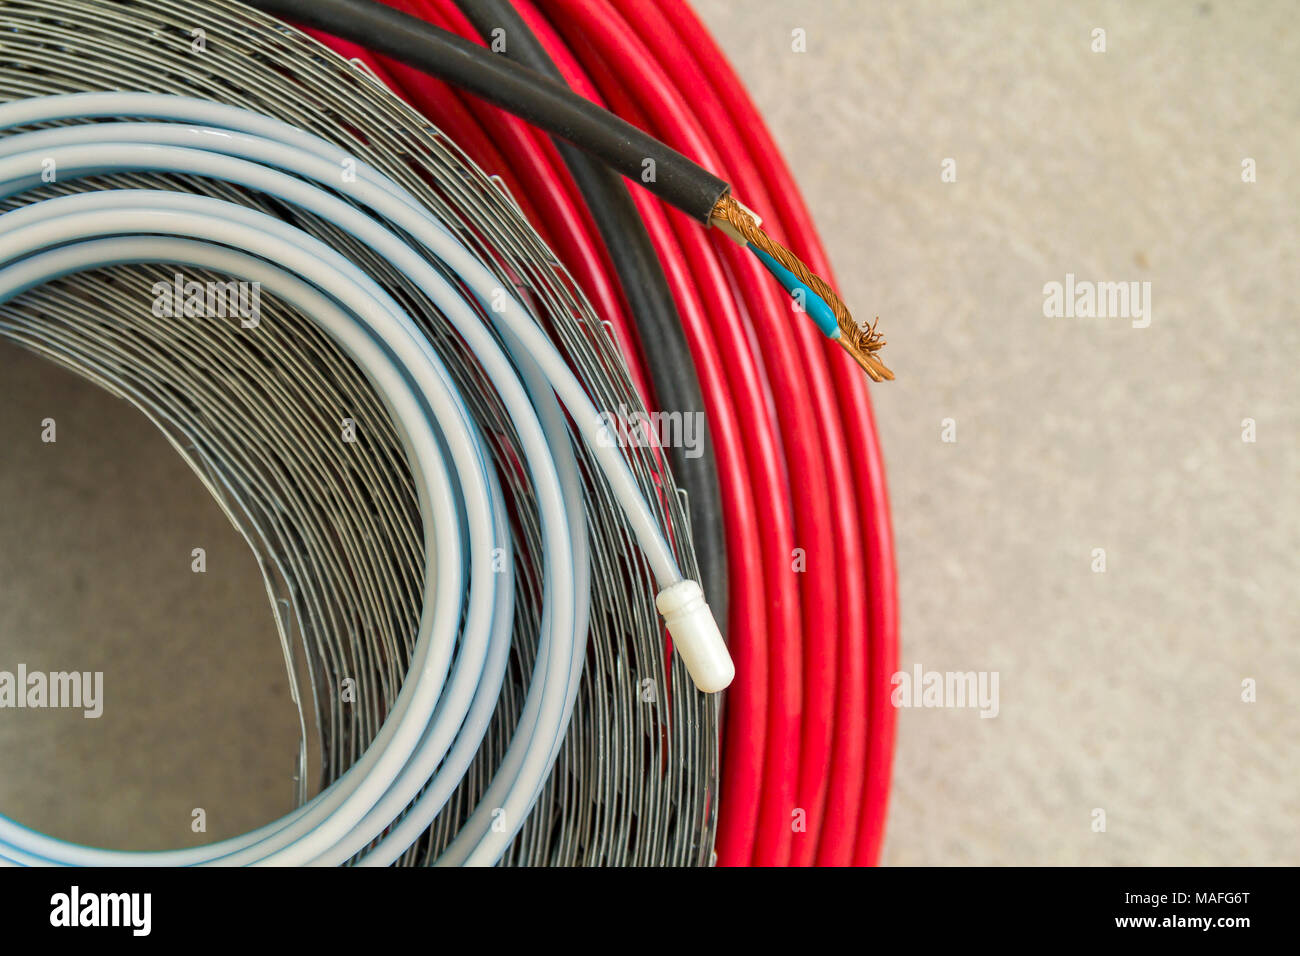 hight resolution of heating floor system wires and cables renovation and construction concept comfort house